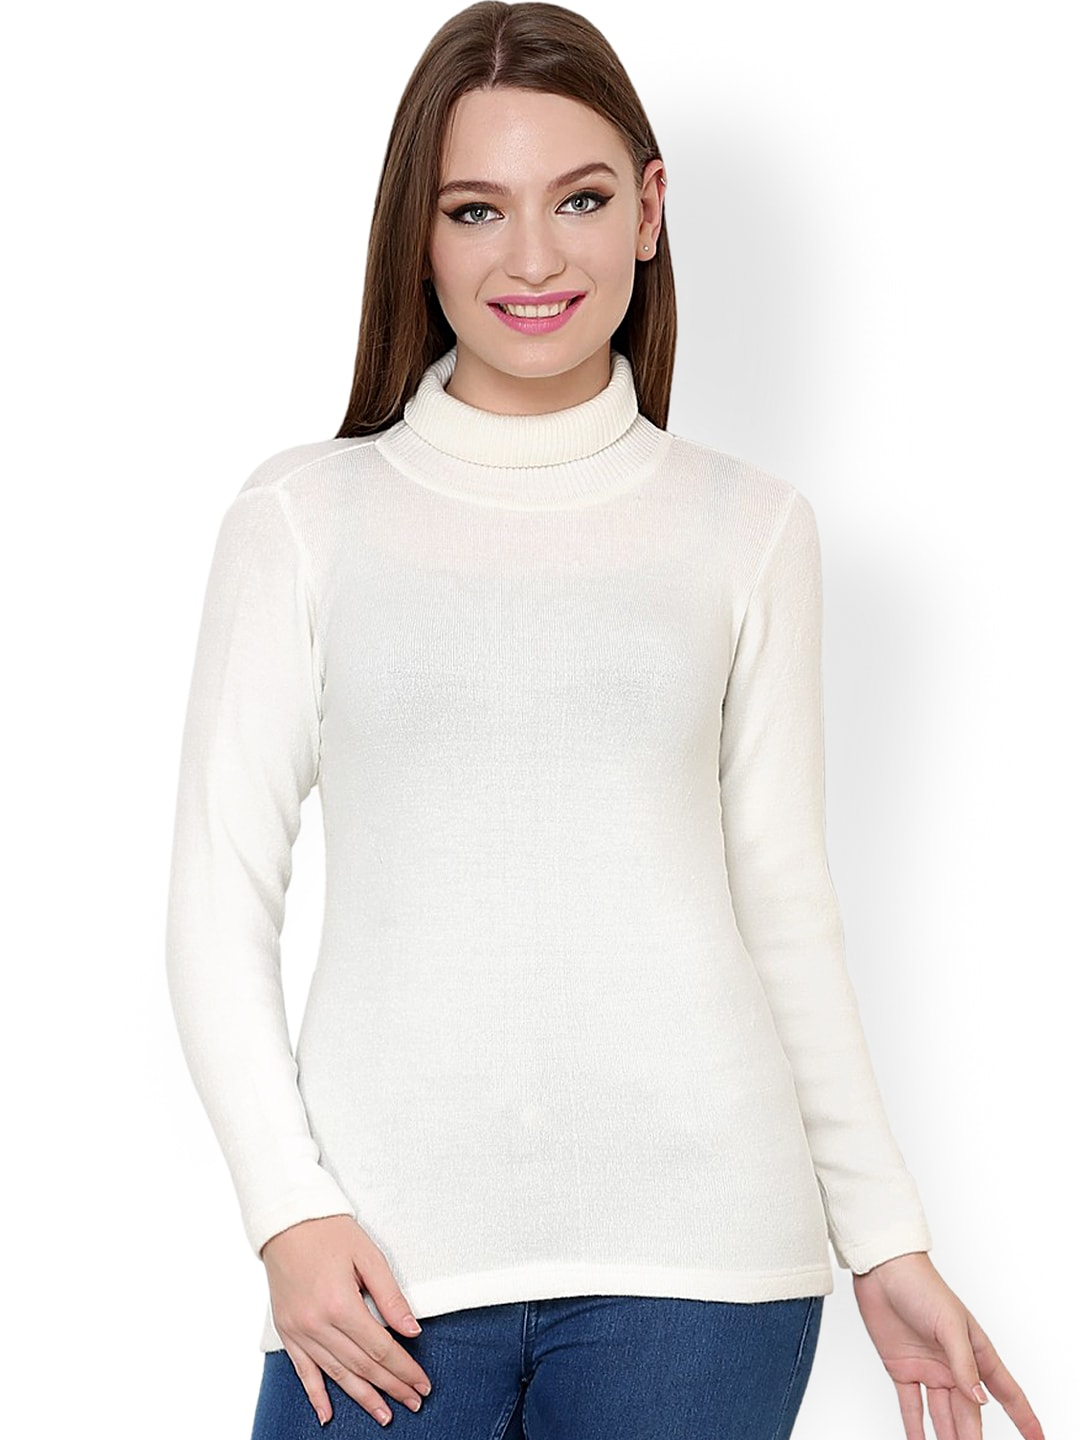 484deb93d0 White Sweaters - Buy White Sweaters online in India